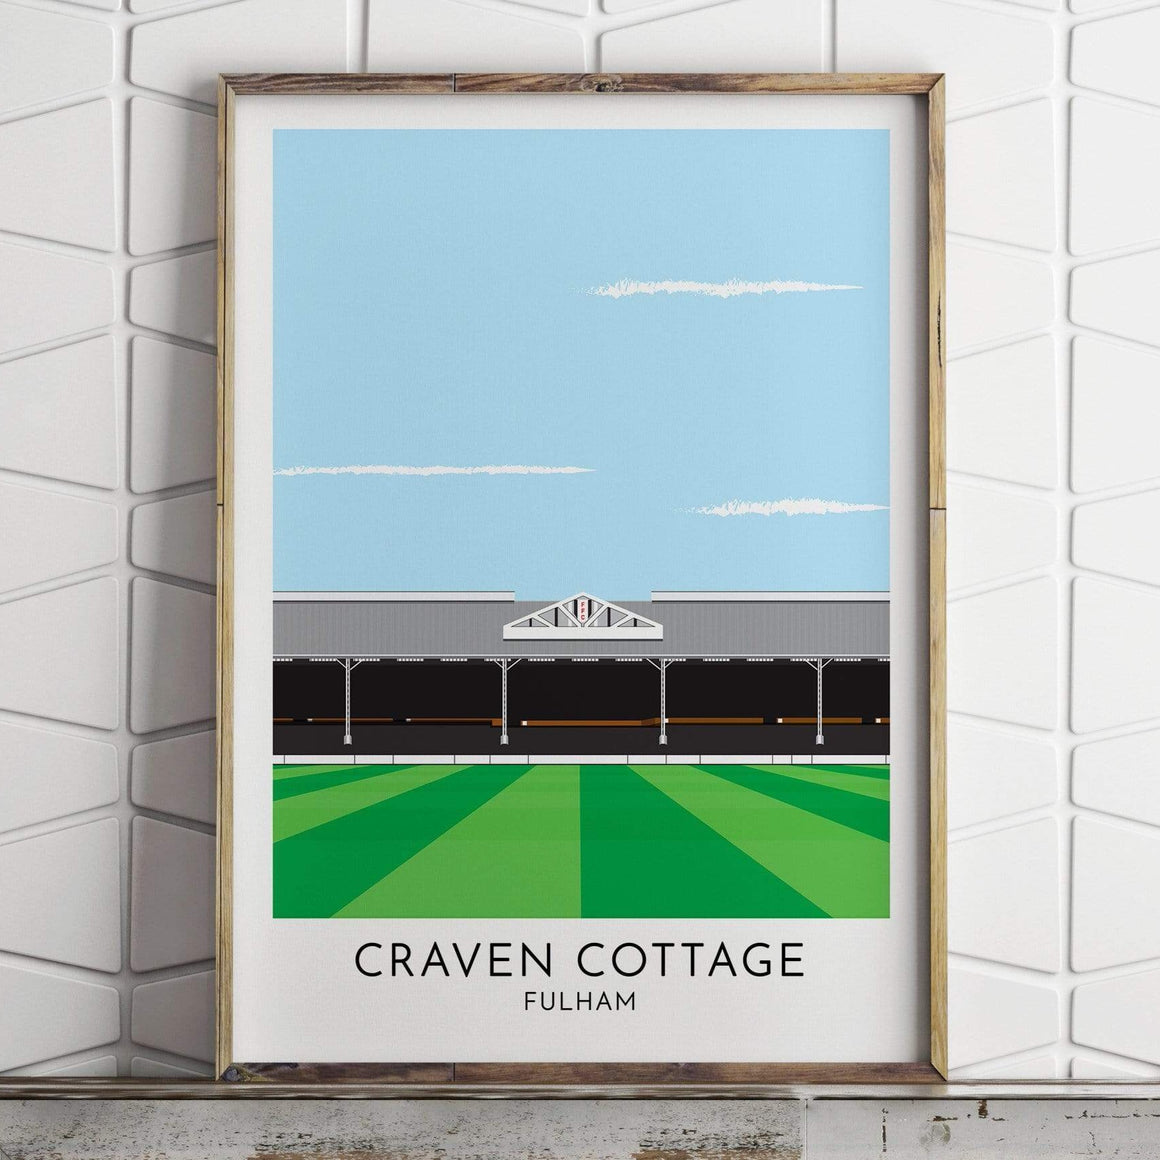 Fulham - Craven Cottage - Contemporary Stadium Print